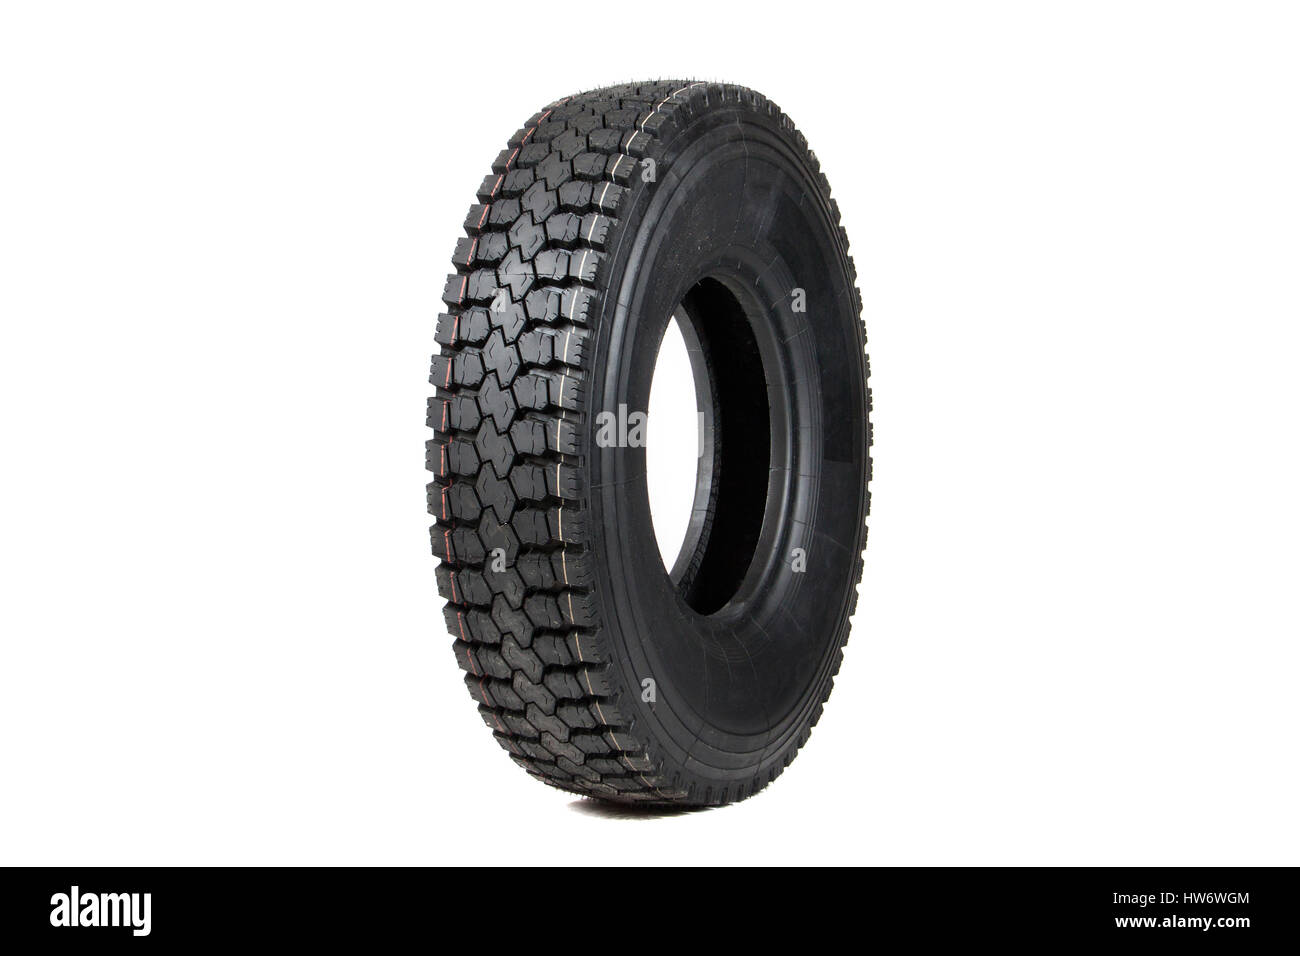 Car tire isolated on white background. Stock Photo